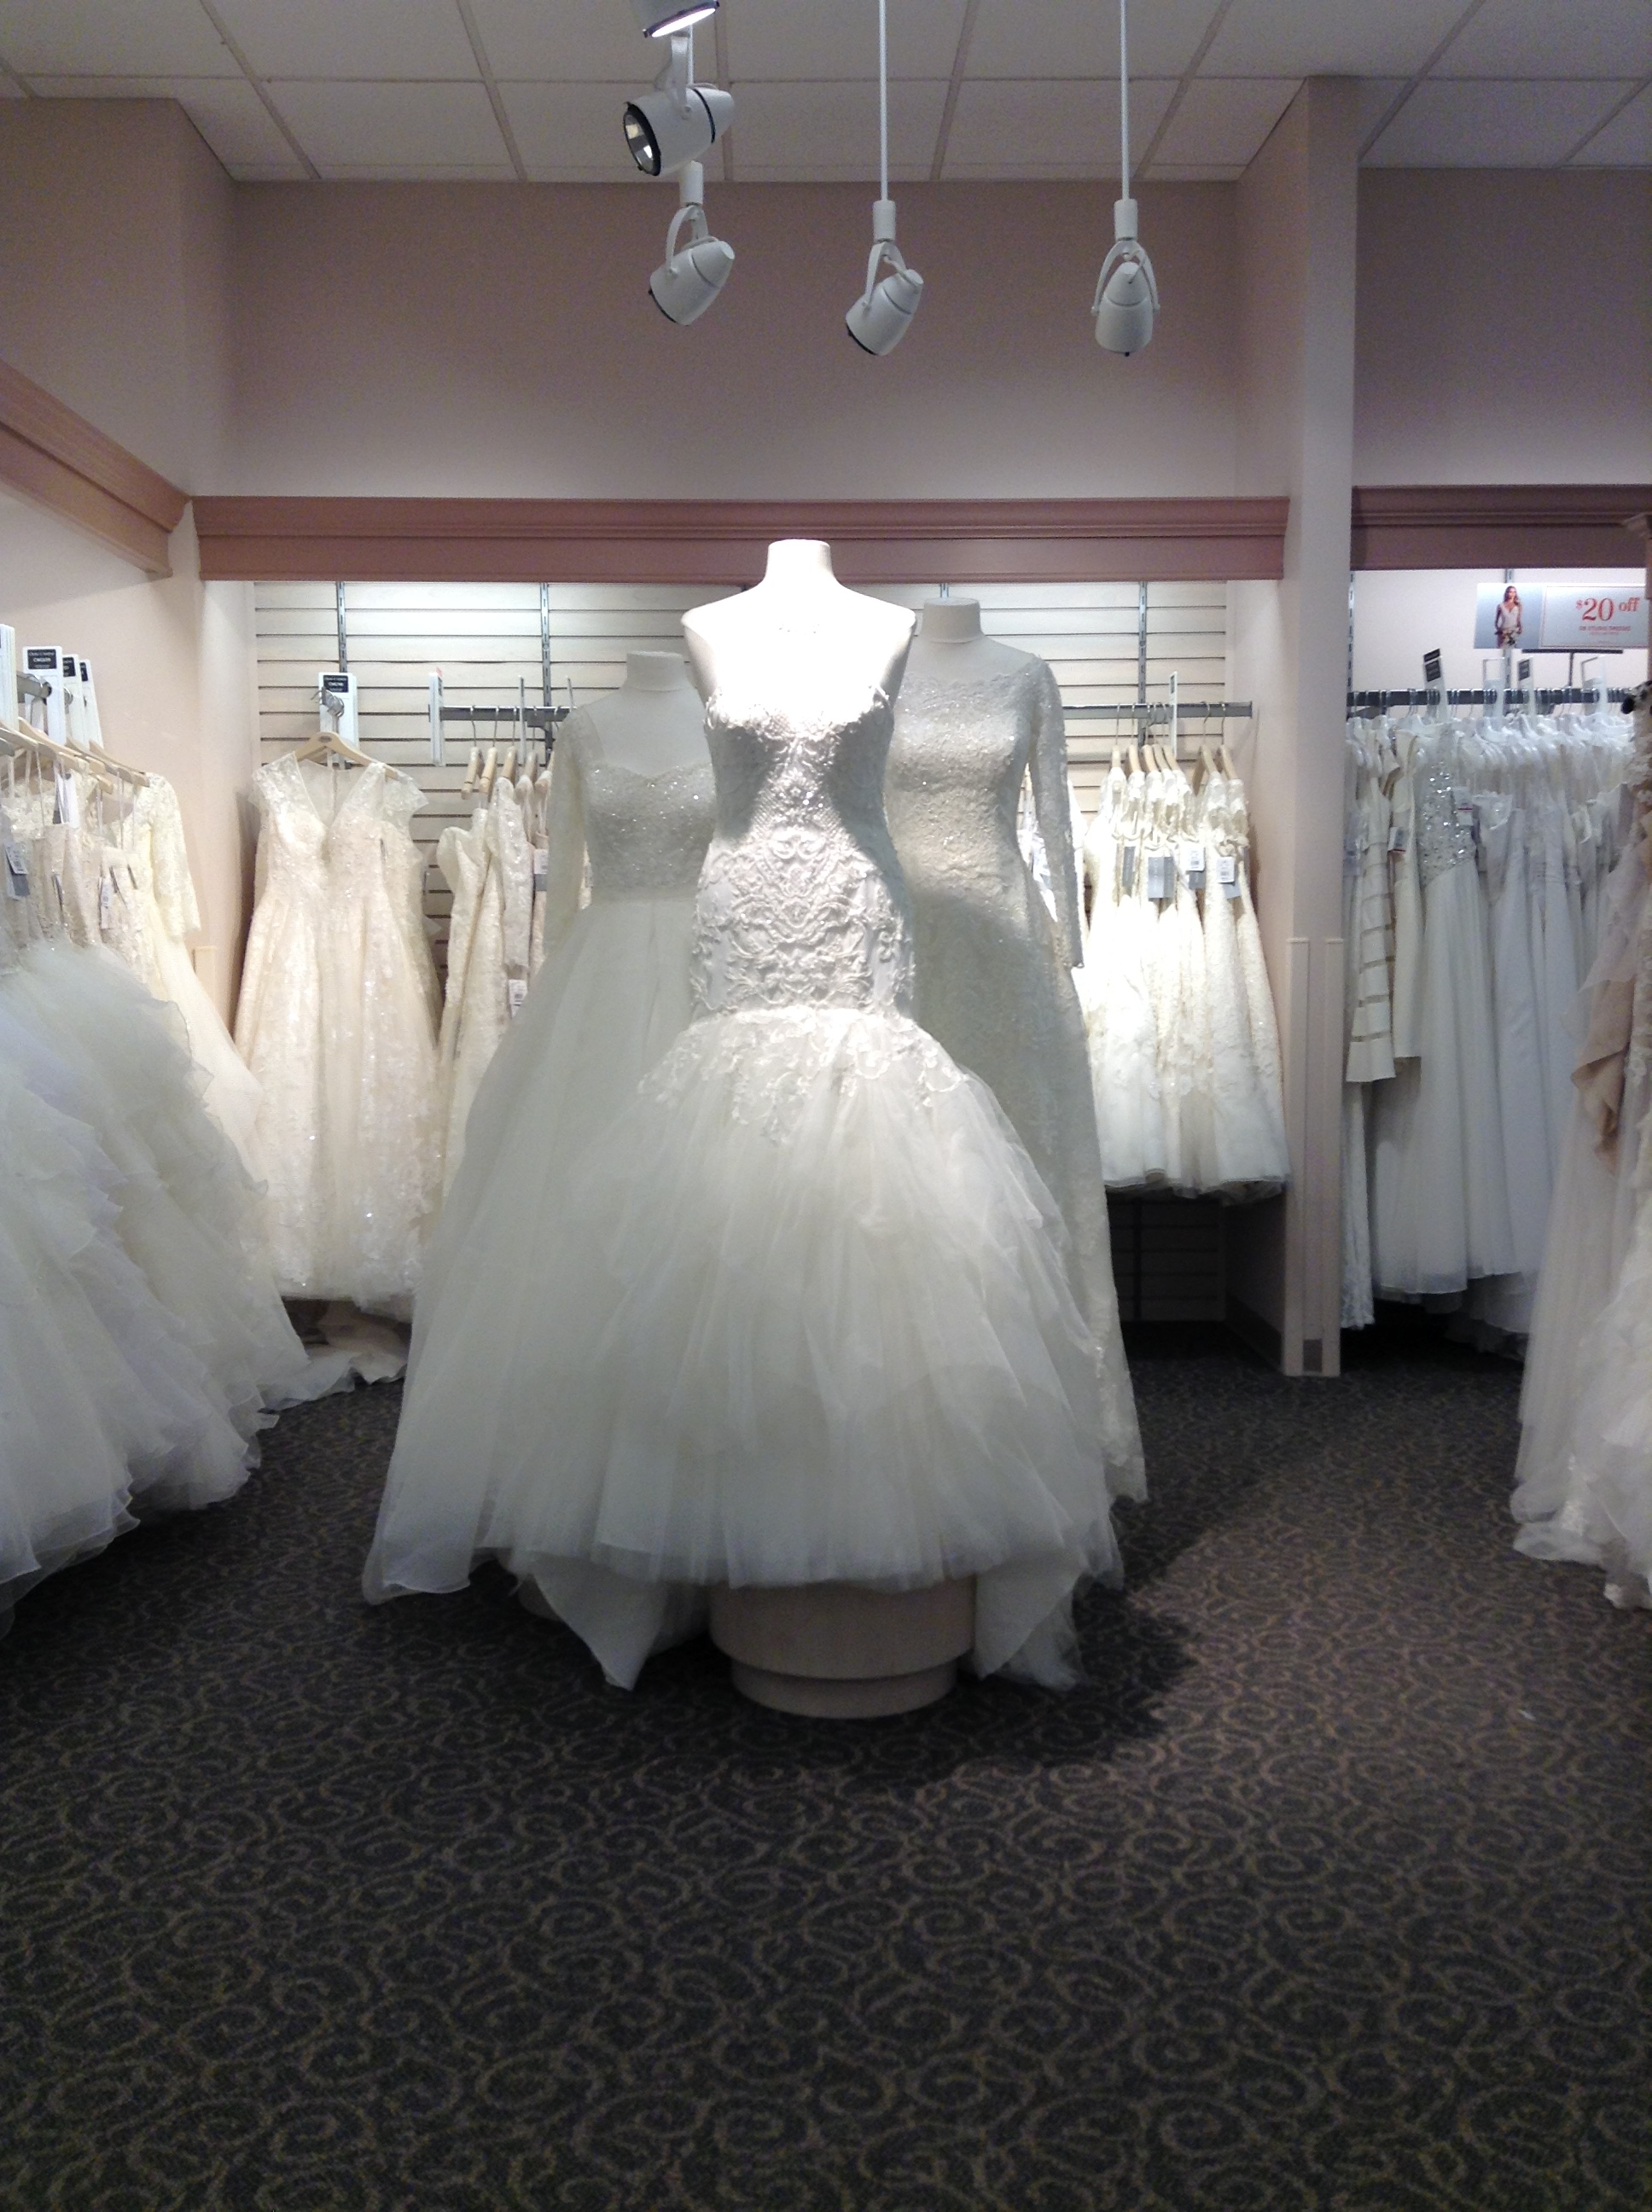 Welcome to David's Bridal Columbus, Georgia store, serving brides and special occasion customers of Midland, Phenix City, Fort Benning and more. David's Bridal is the ultimate one-stop shop for wedding dresses and all your formal apparel.